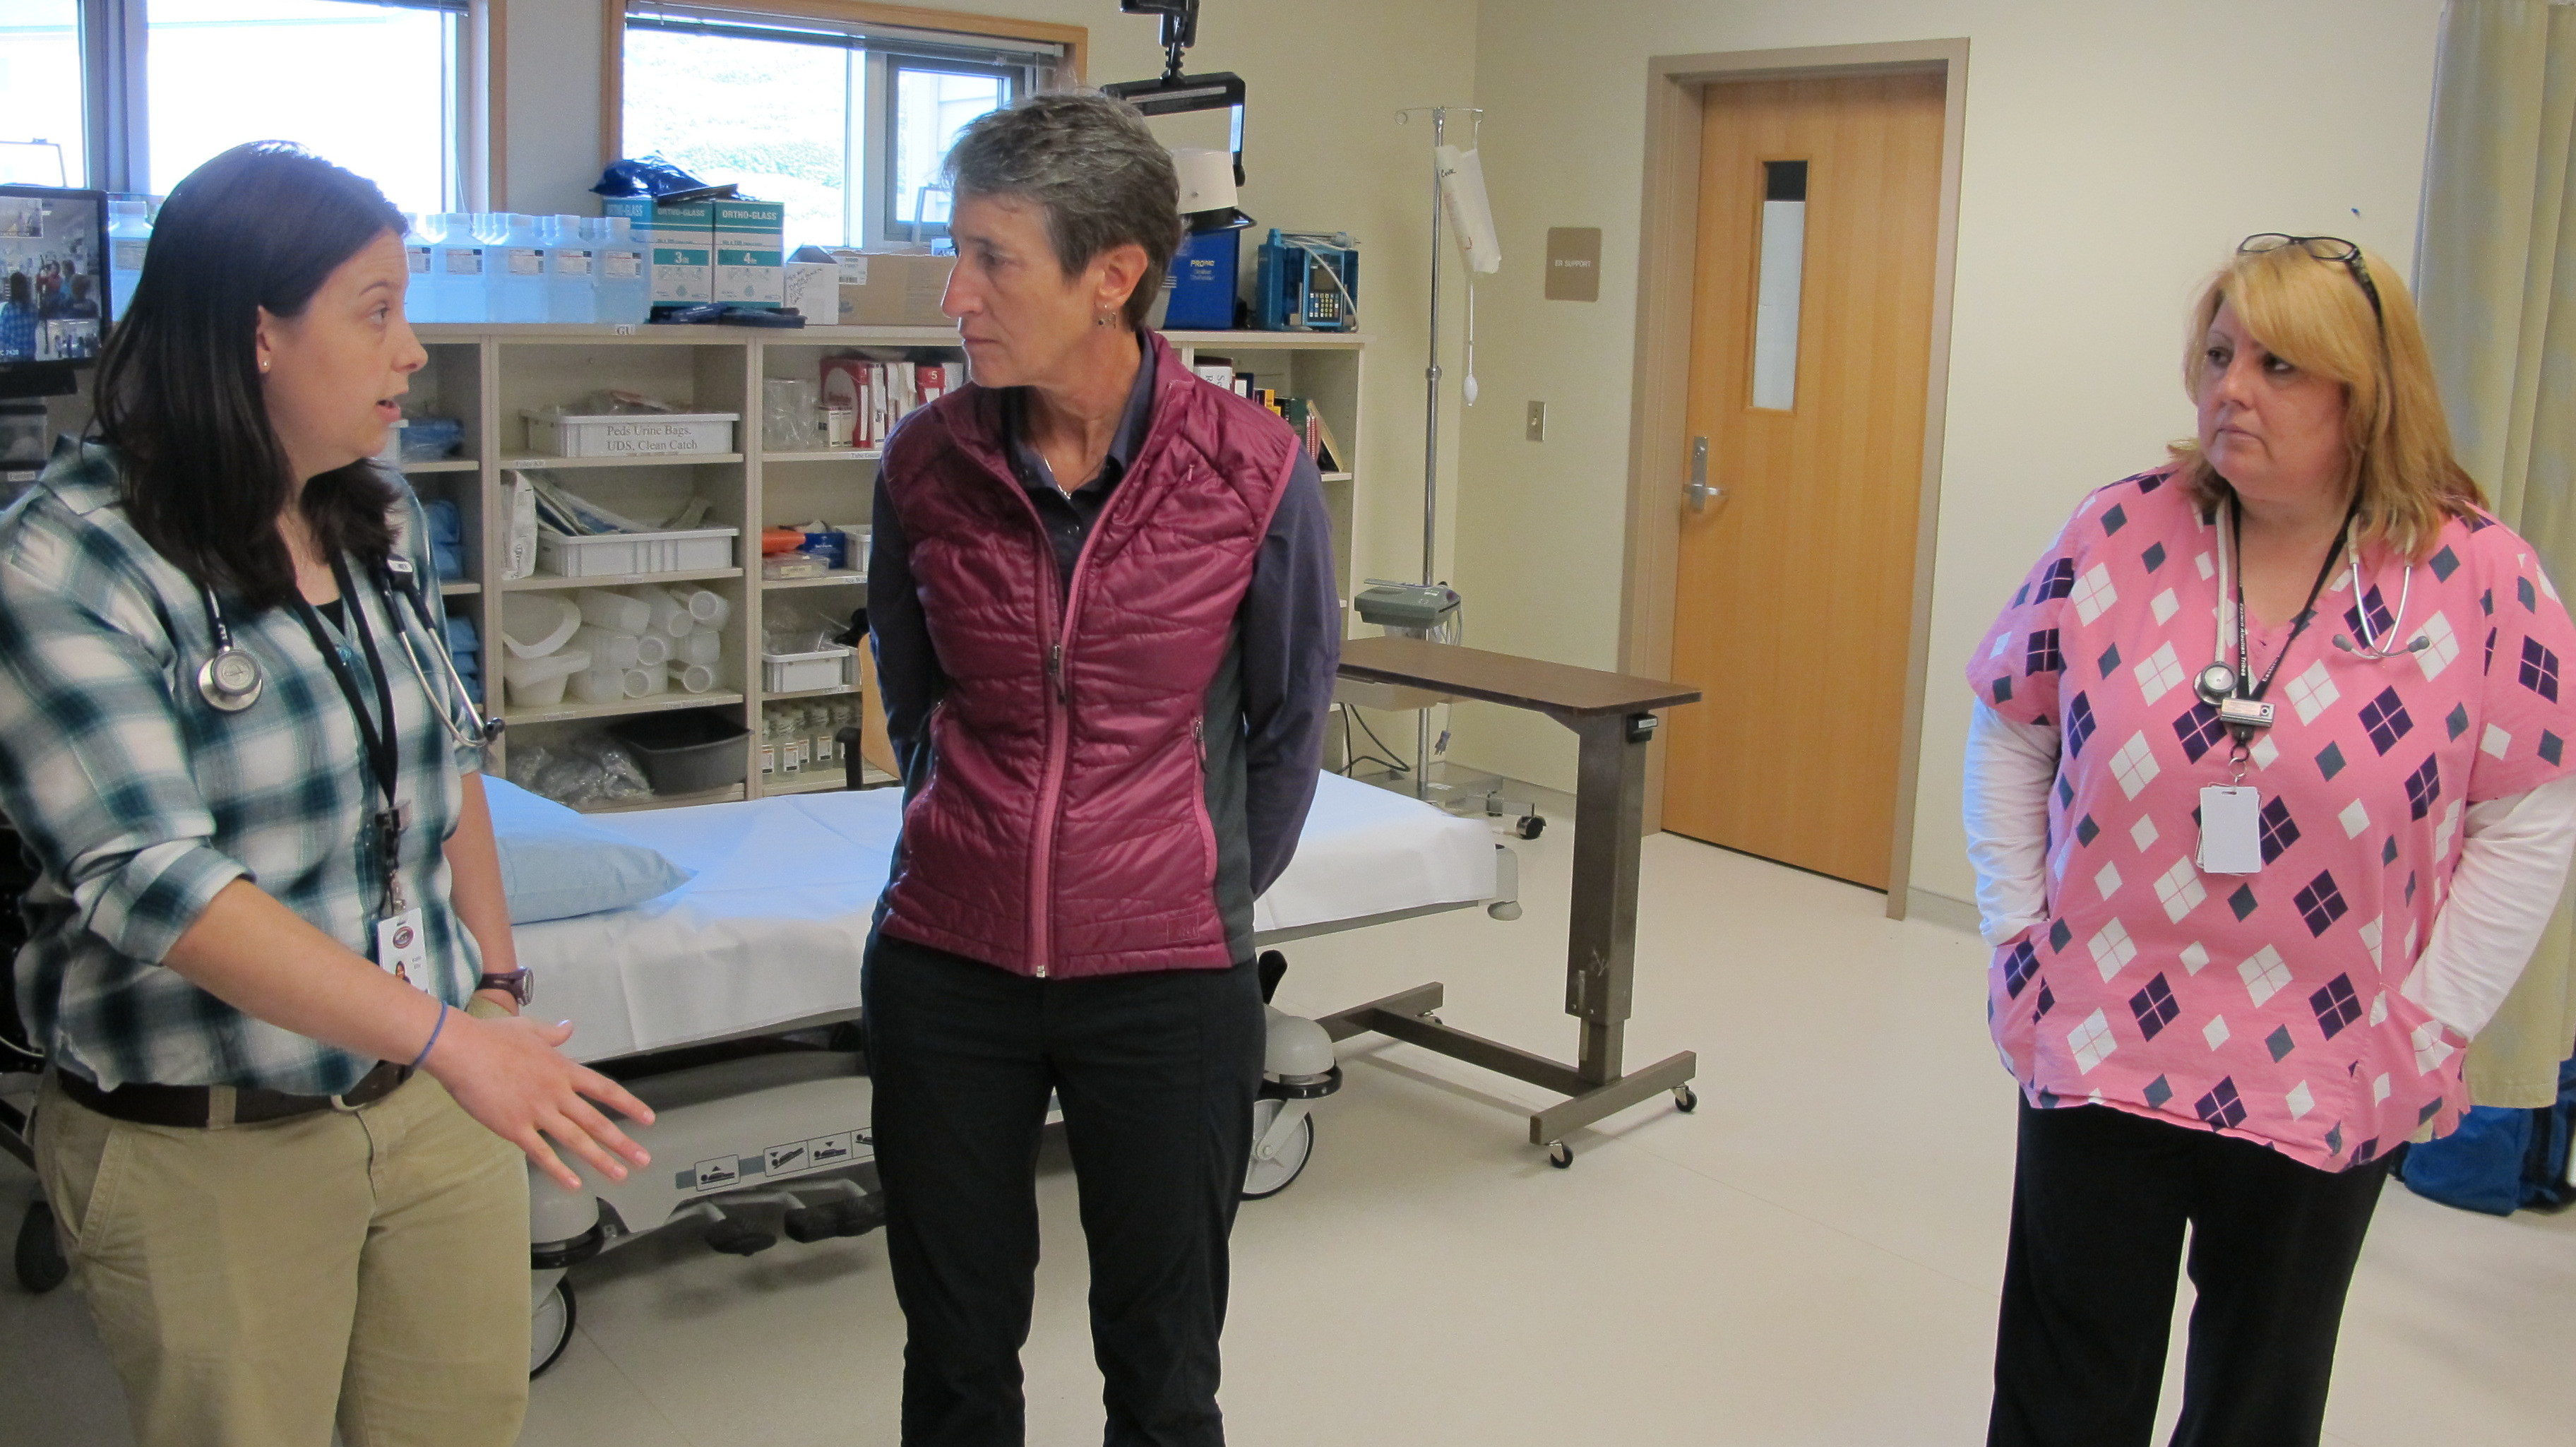 Bonita Babcock (right) looks on as a physician assistant at the clinic in King Cove, Alaska, explains to Interior Secretary Sally Jewell how a road from King Cove to Cold Bay would improve health care.